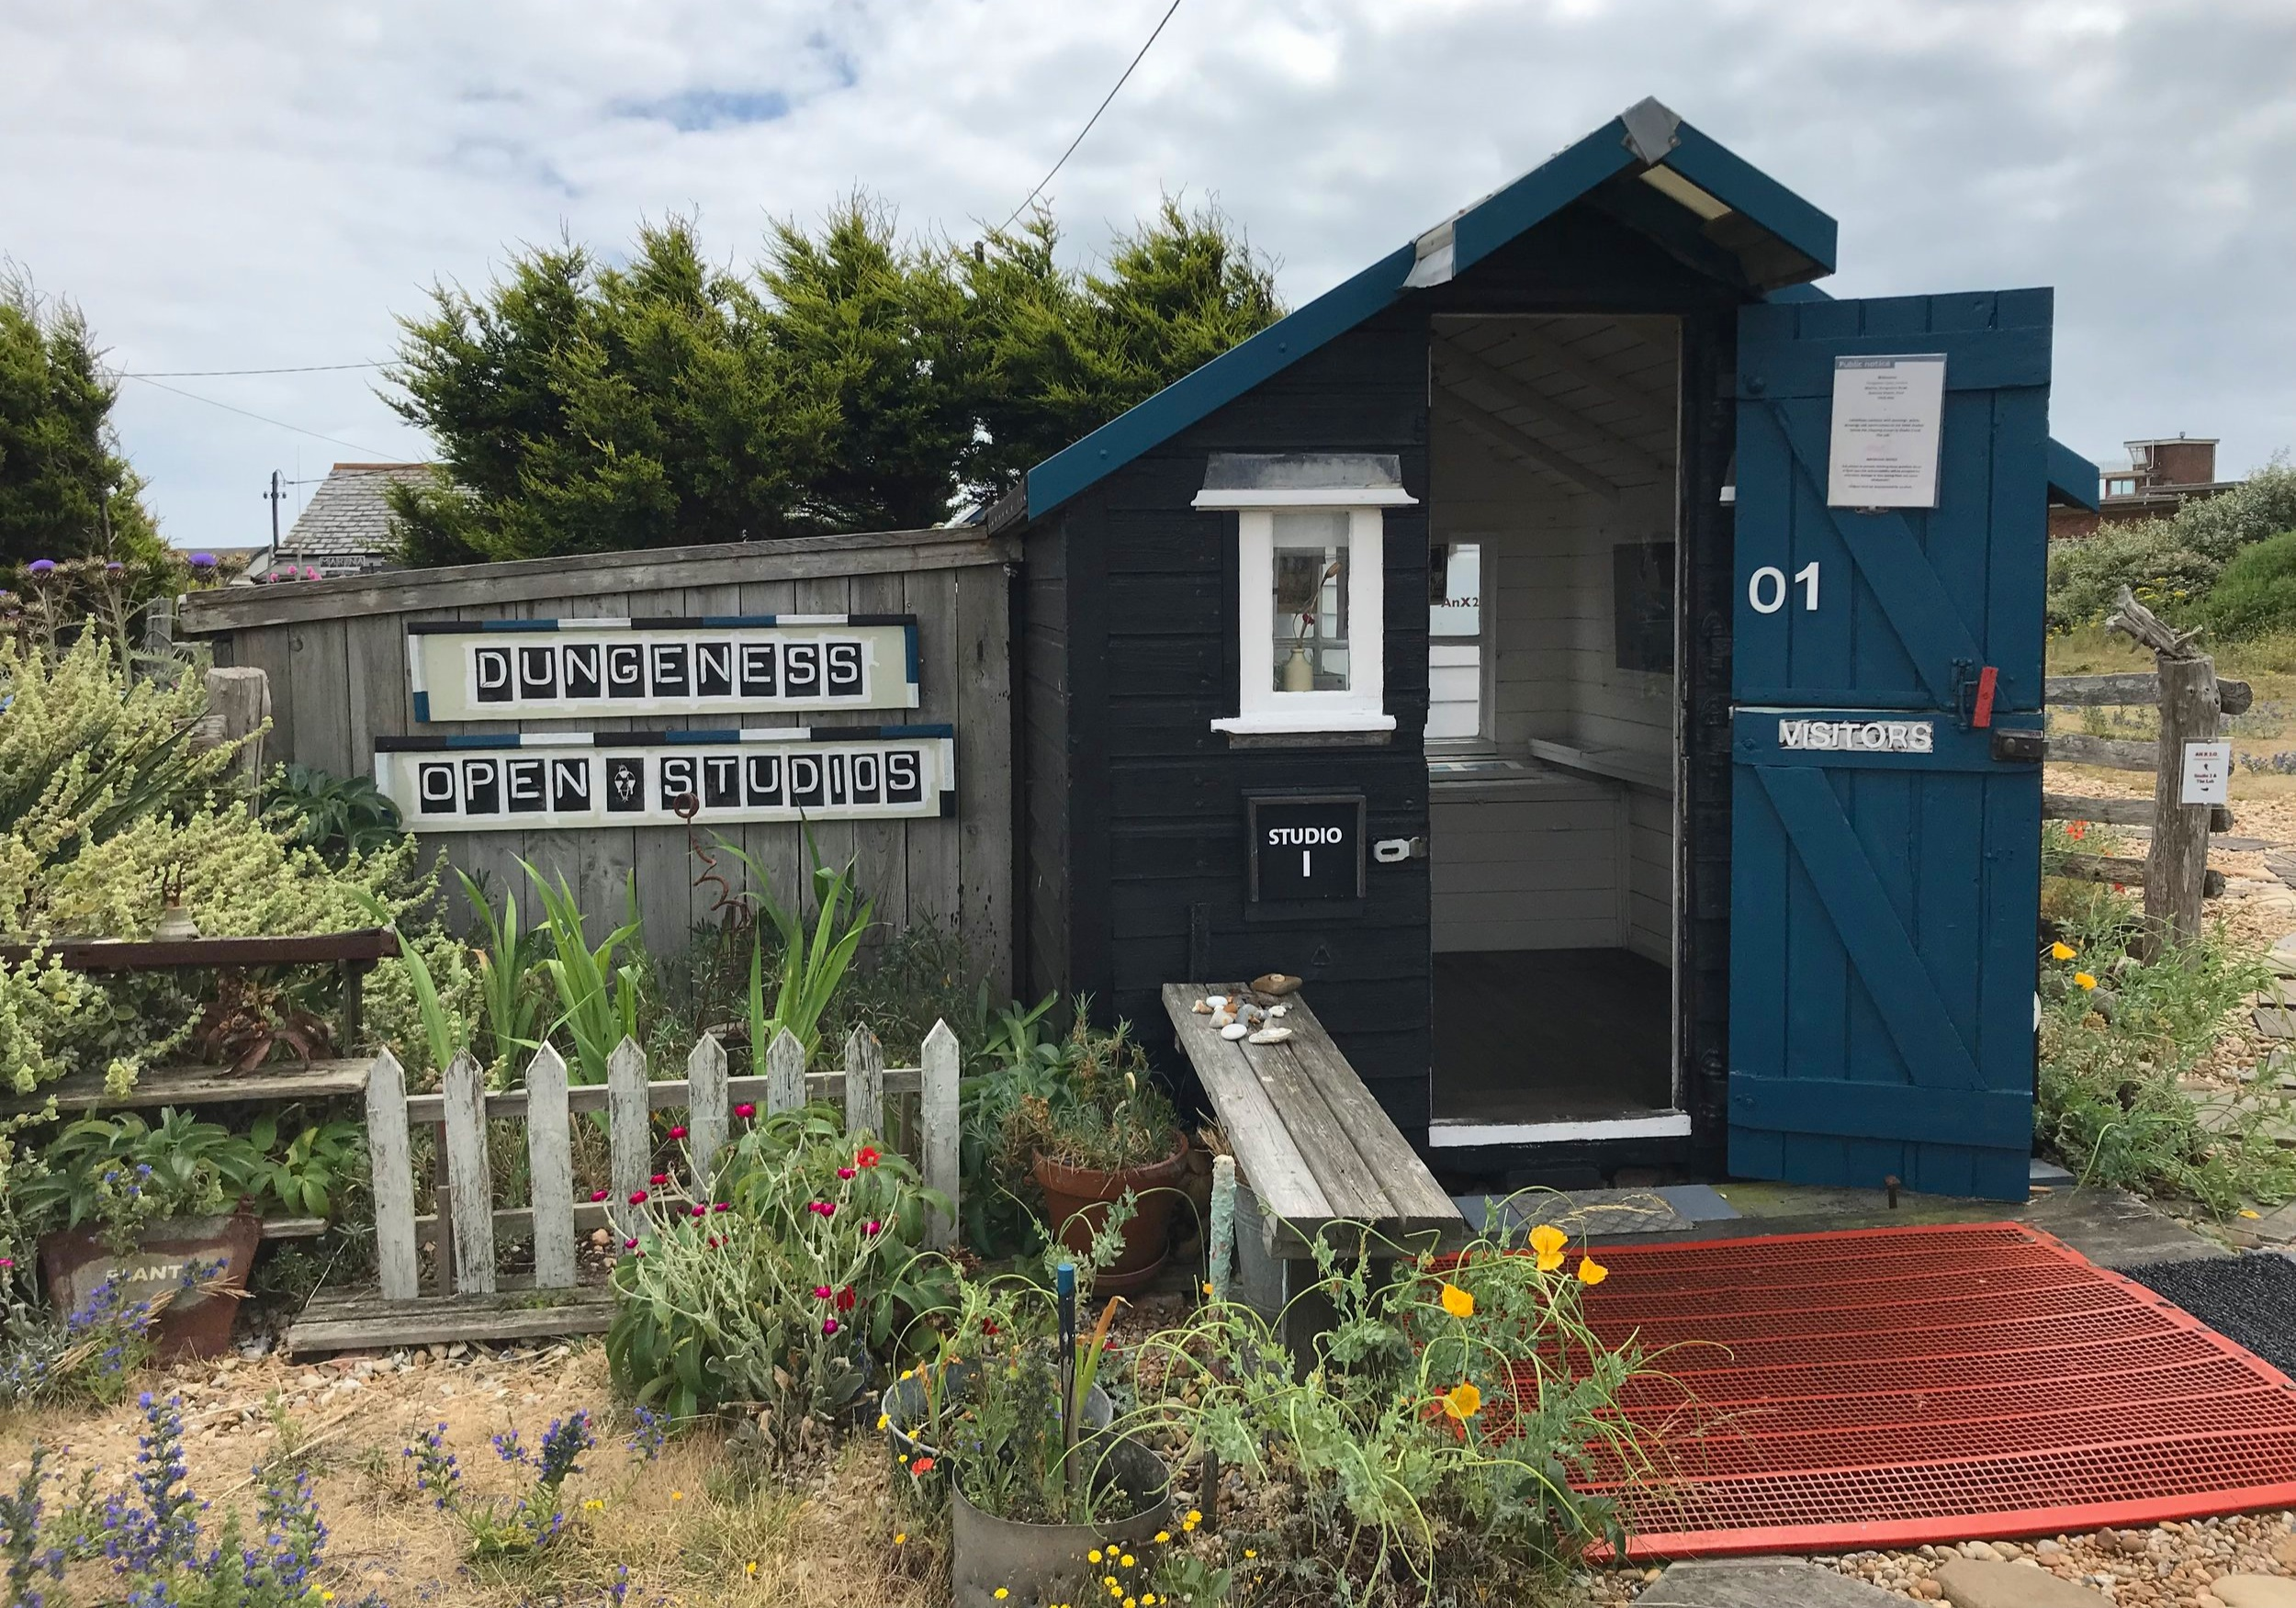 The first of the two tiny shed galleries at Dungeness Open Studio